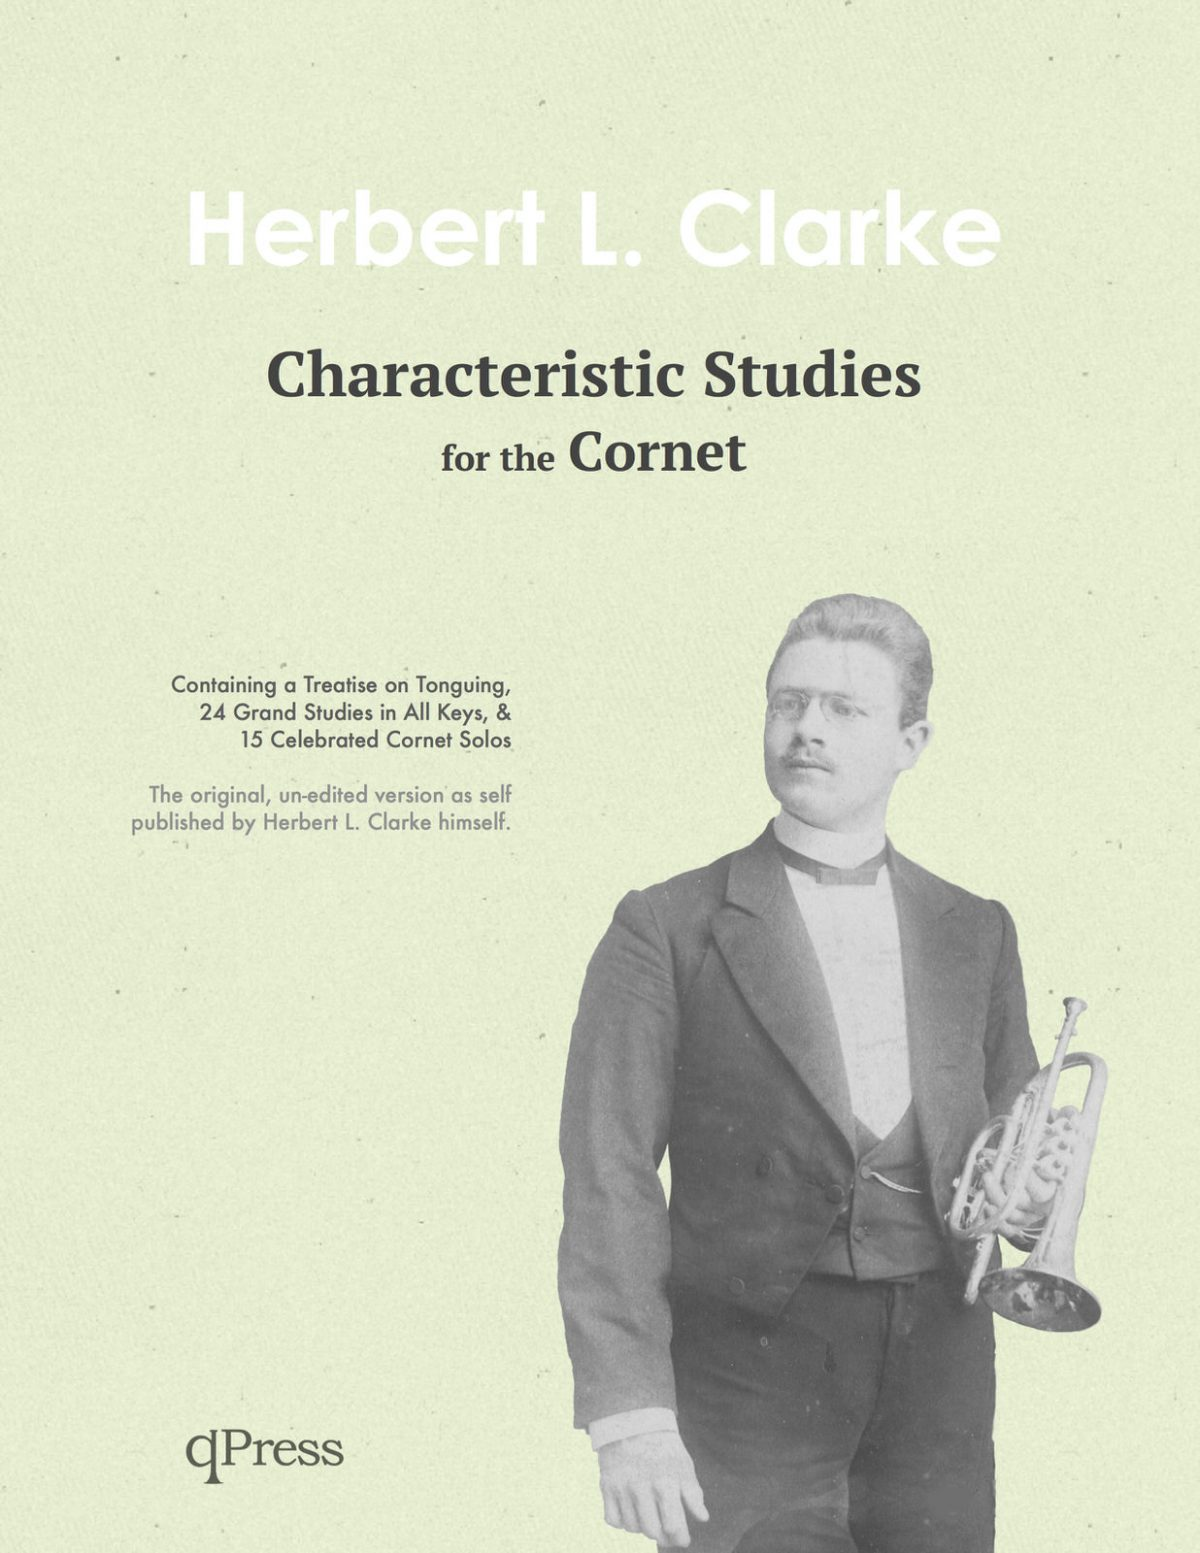 Clarke, Characteristic Studies for the Cornet